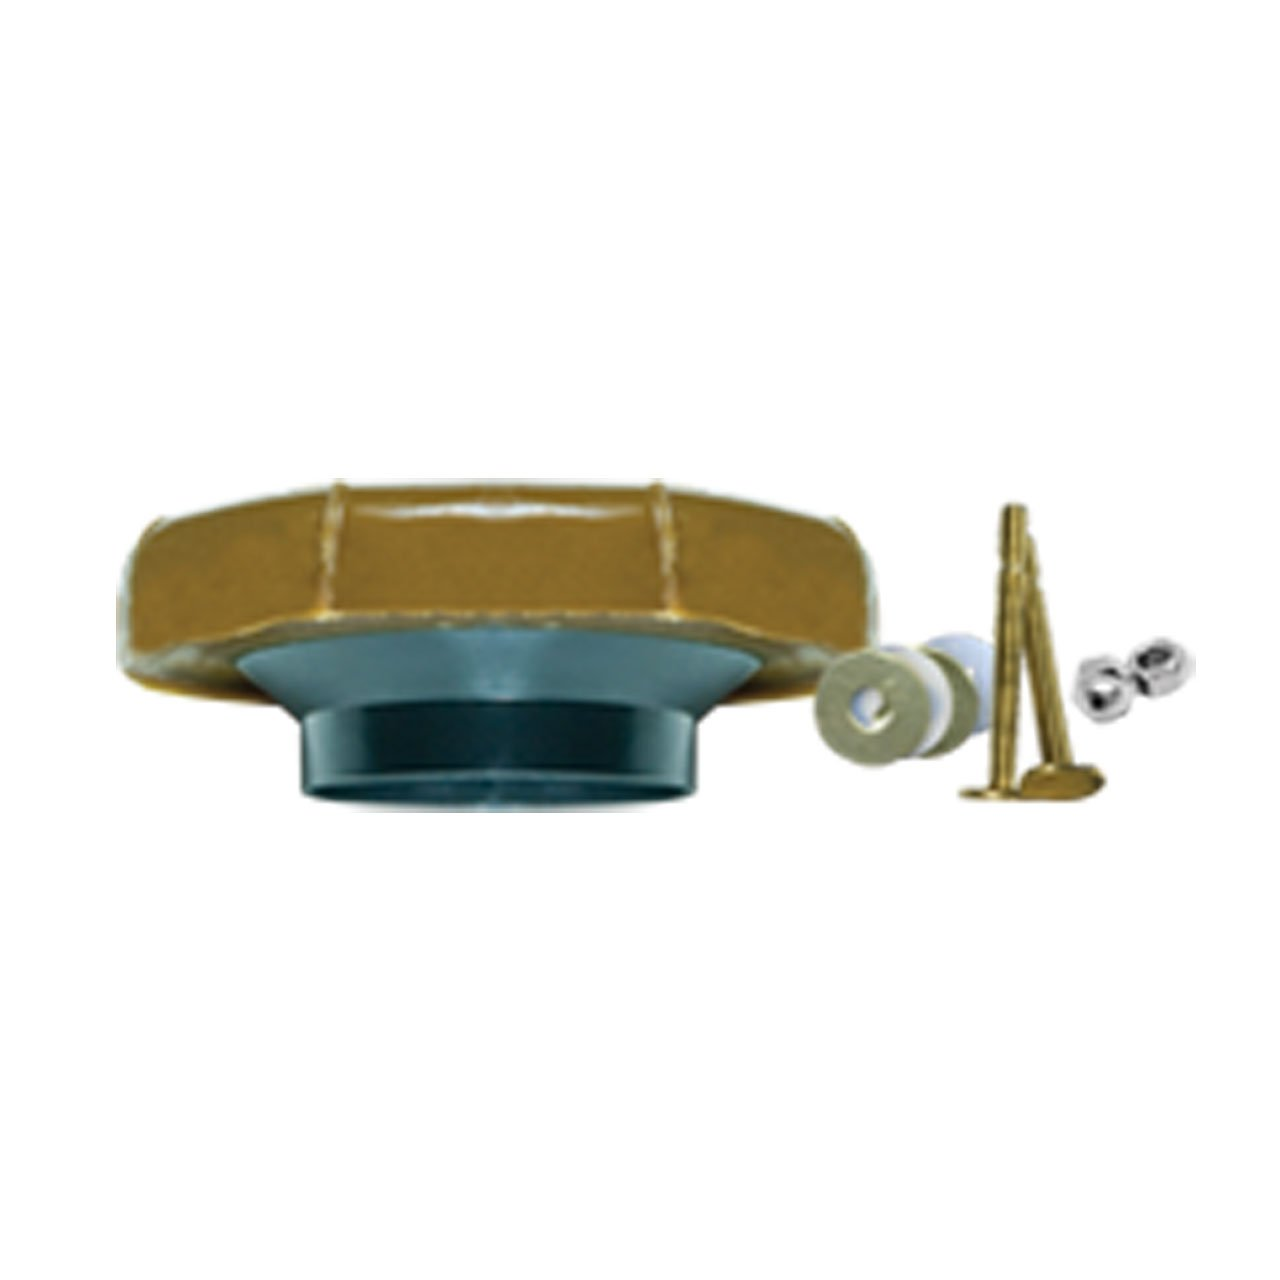 B004VSTVLG Fluidmaster 7512 Toilet Wax Ring Kit With Flange And Bolts, For Use With 3 In And 4 In Waste Lines, Plastic 51QLma7tALL